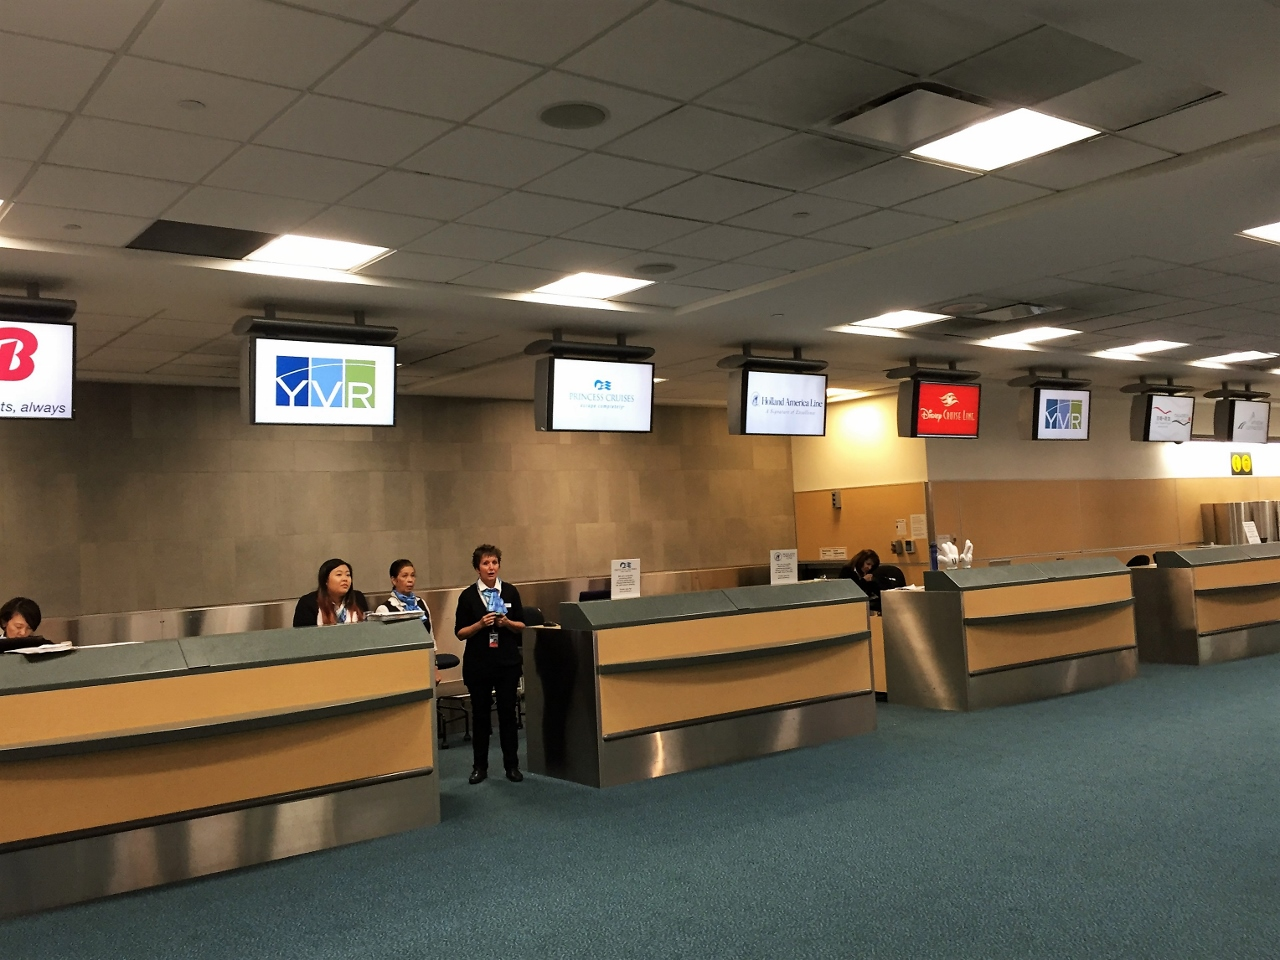 Holland America Line, Princess Cruises, Disney Cruise Line and others can accept passengers checking in at Vancouver Airport.